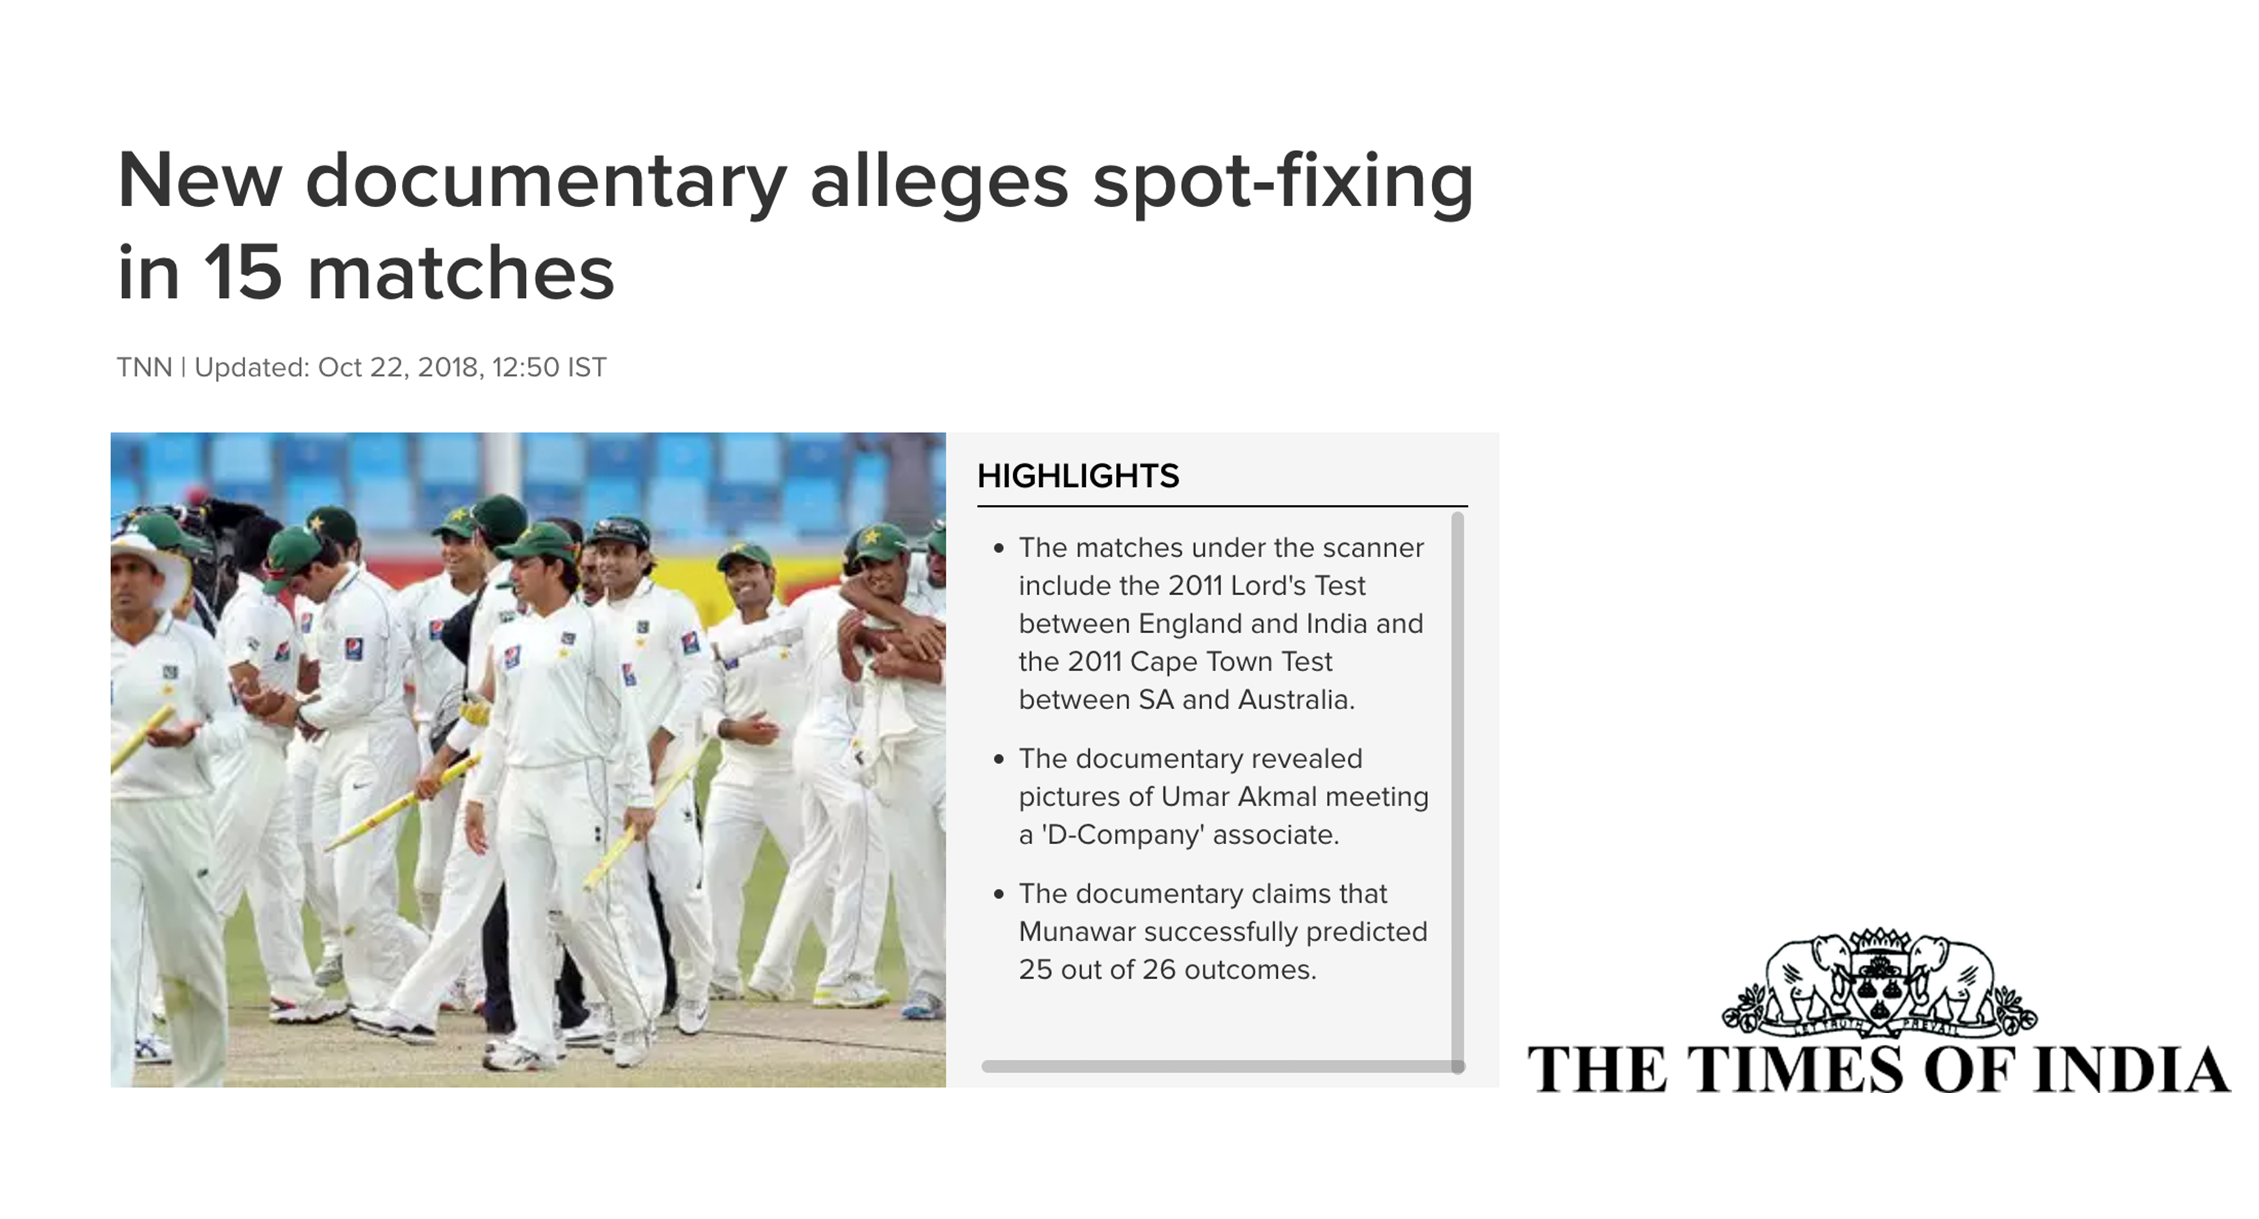 Times of India: New documentary alleges spot-fixing in 15 matches